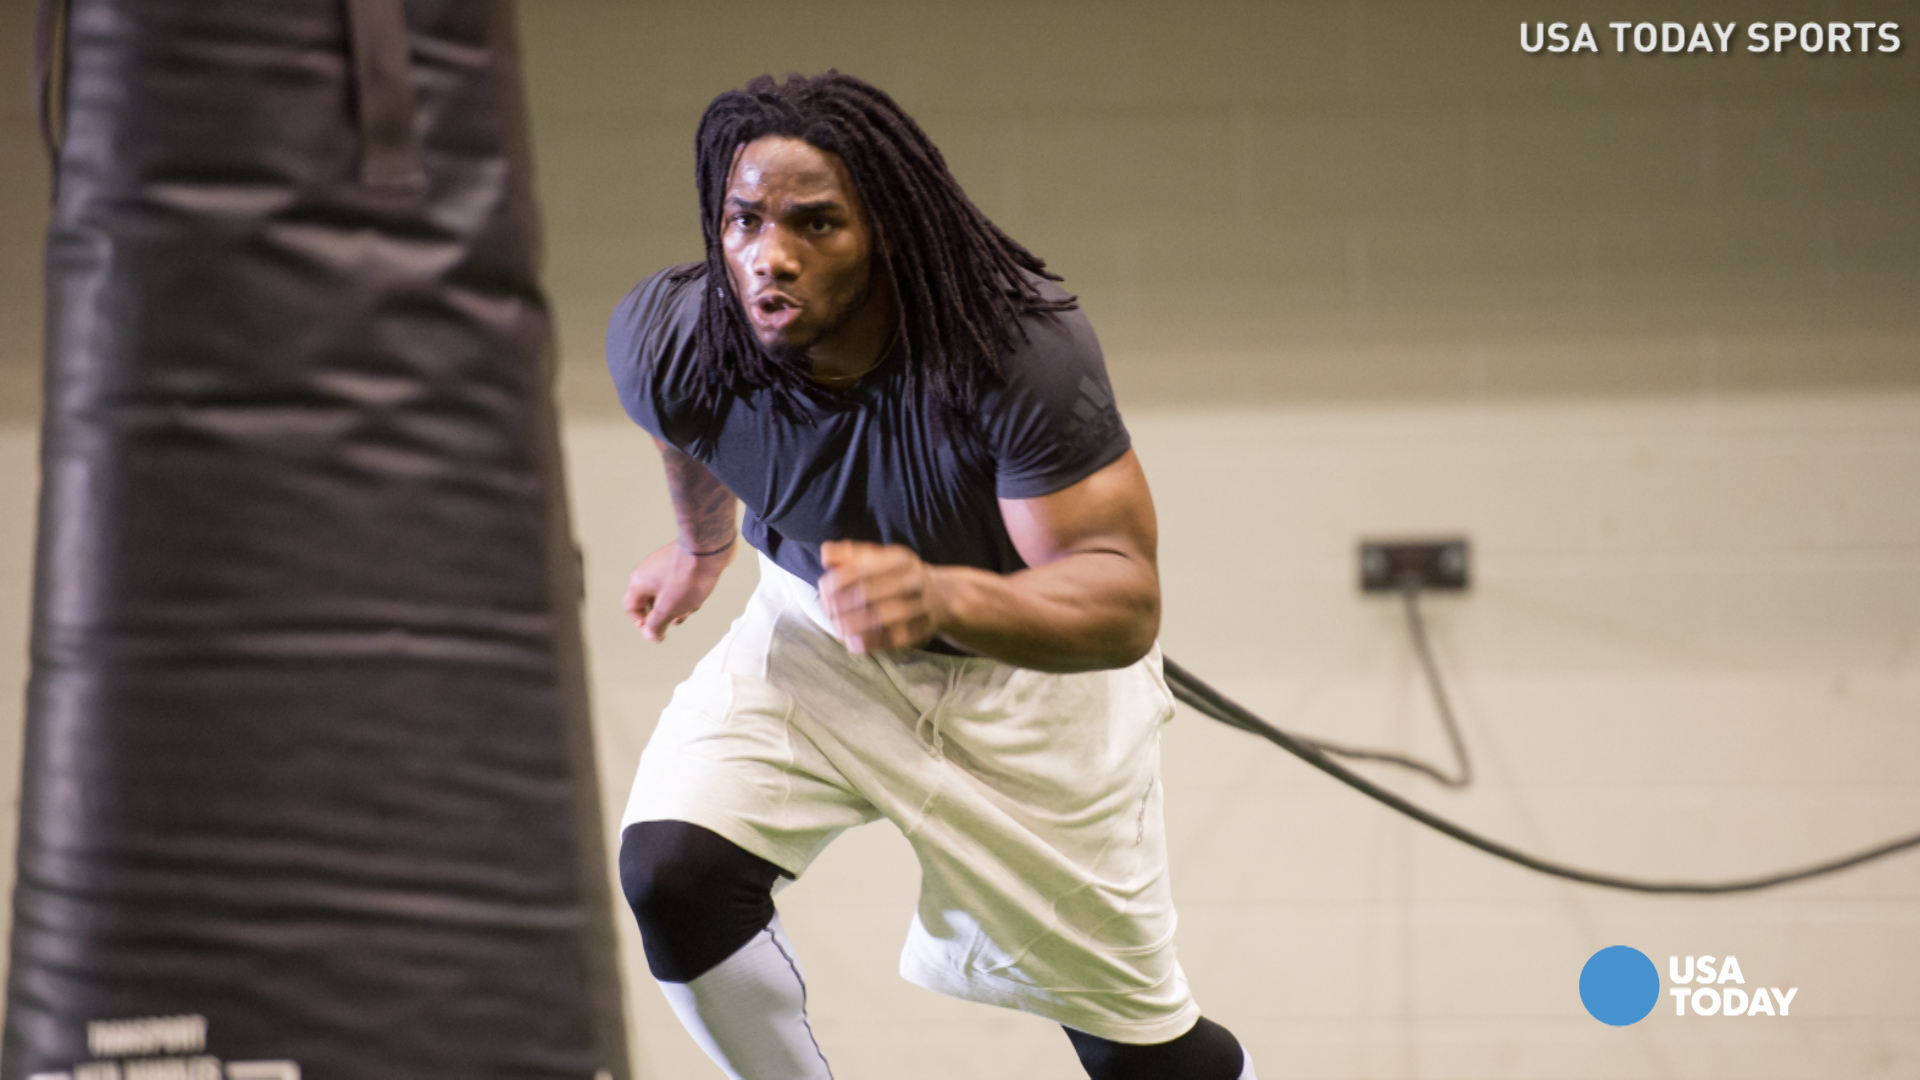 Notre Dame linebacker Jaylon Smith is expected to be one of the top linebackers in the NFL draft, but he injured his knee last season and some wonder if he'll be the same player again.